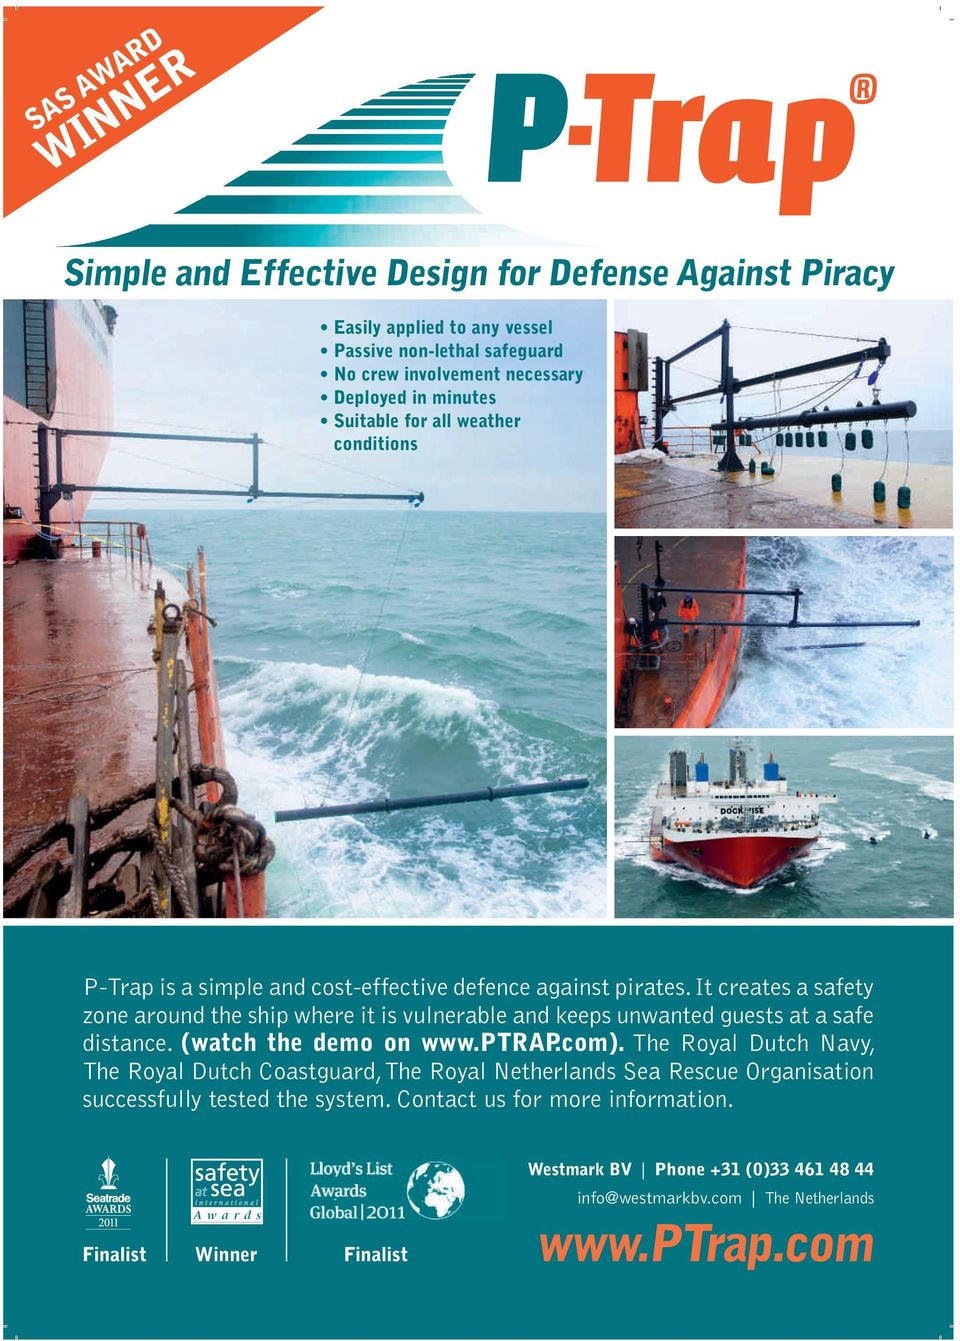 It creates a safety zone around the ship where it is vulnerable and keeps unwanted guests at a safe distance. (watch the demo on www.ptrap.com).